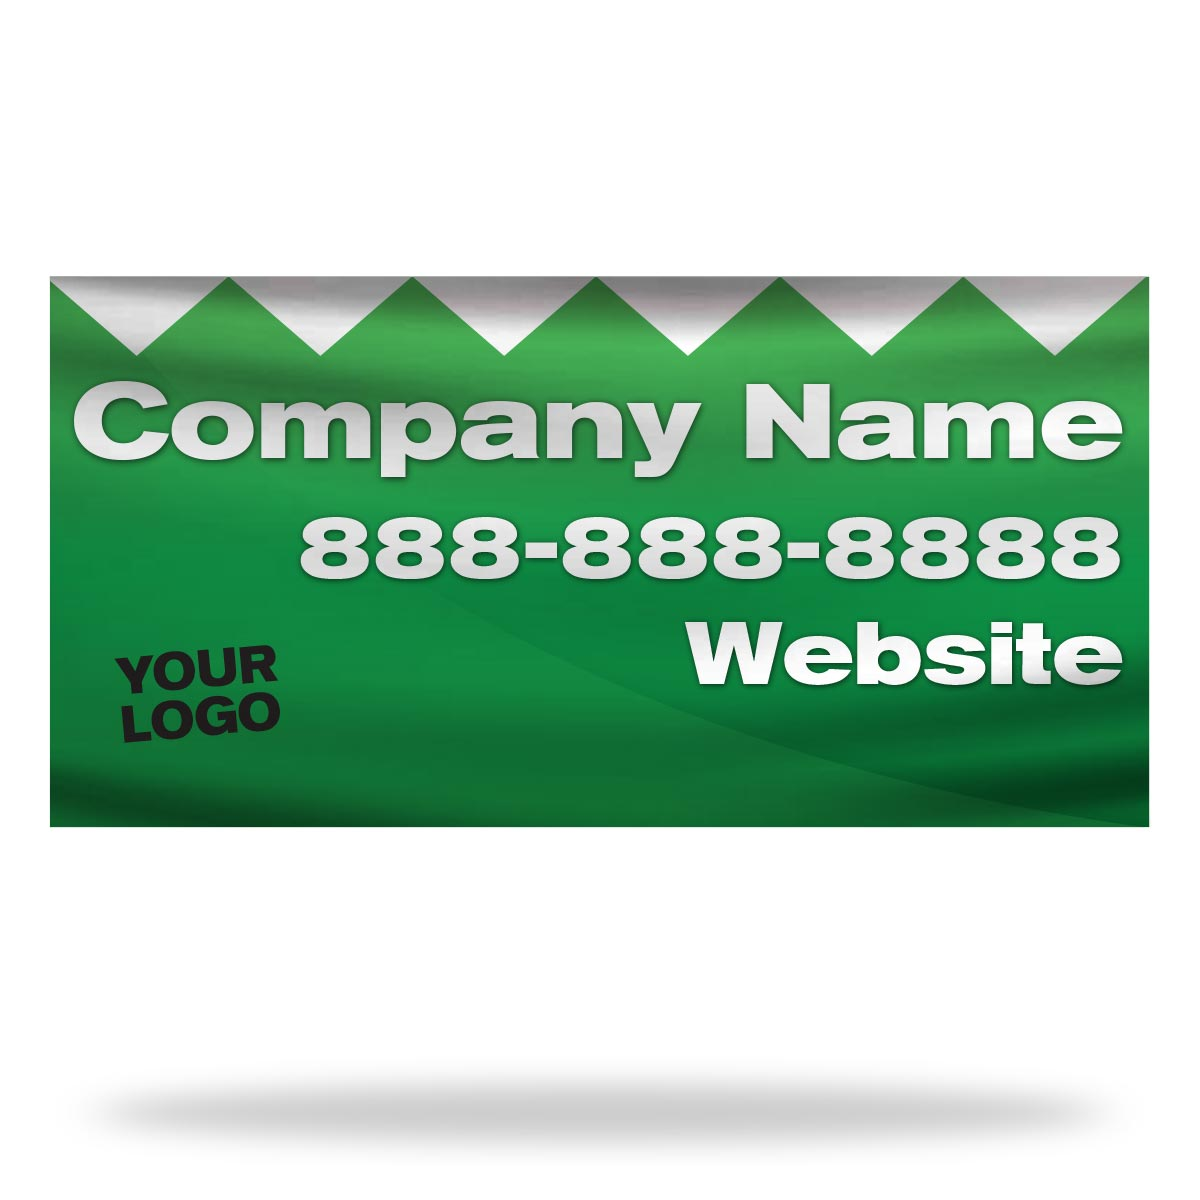 Universal Business Info Flags & Banners Design 01